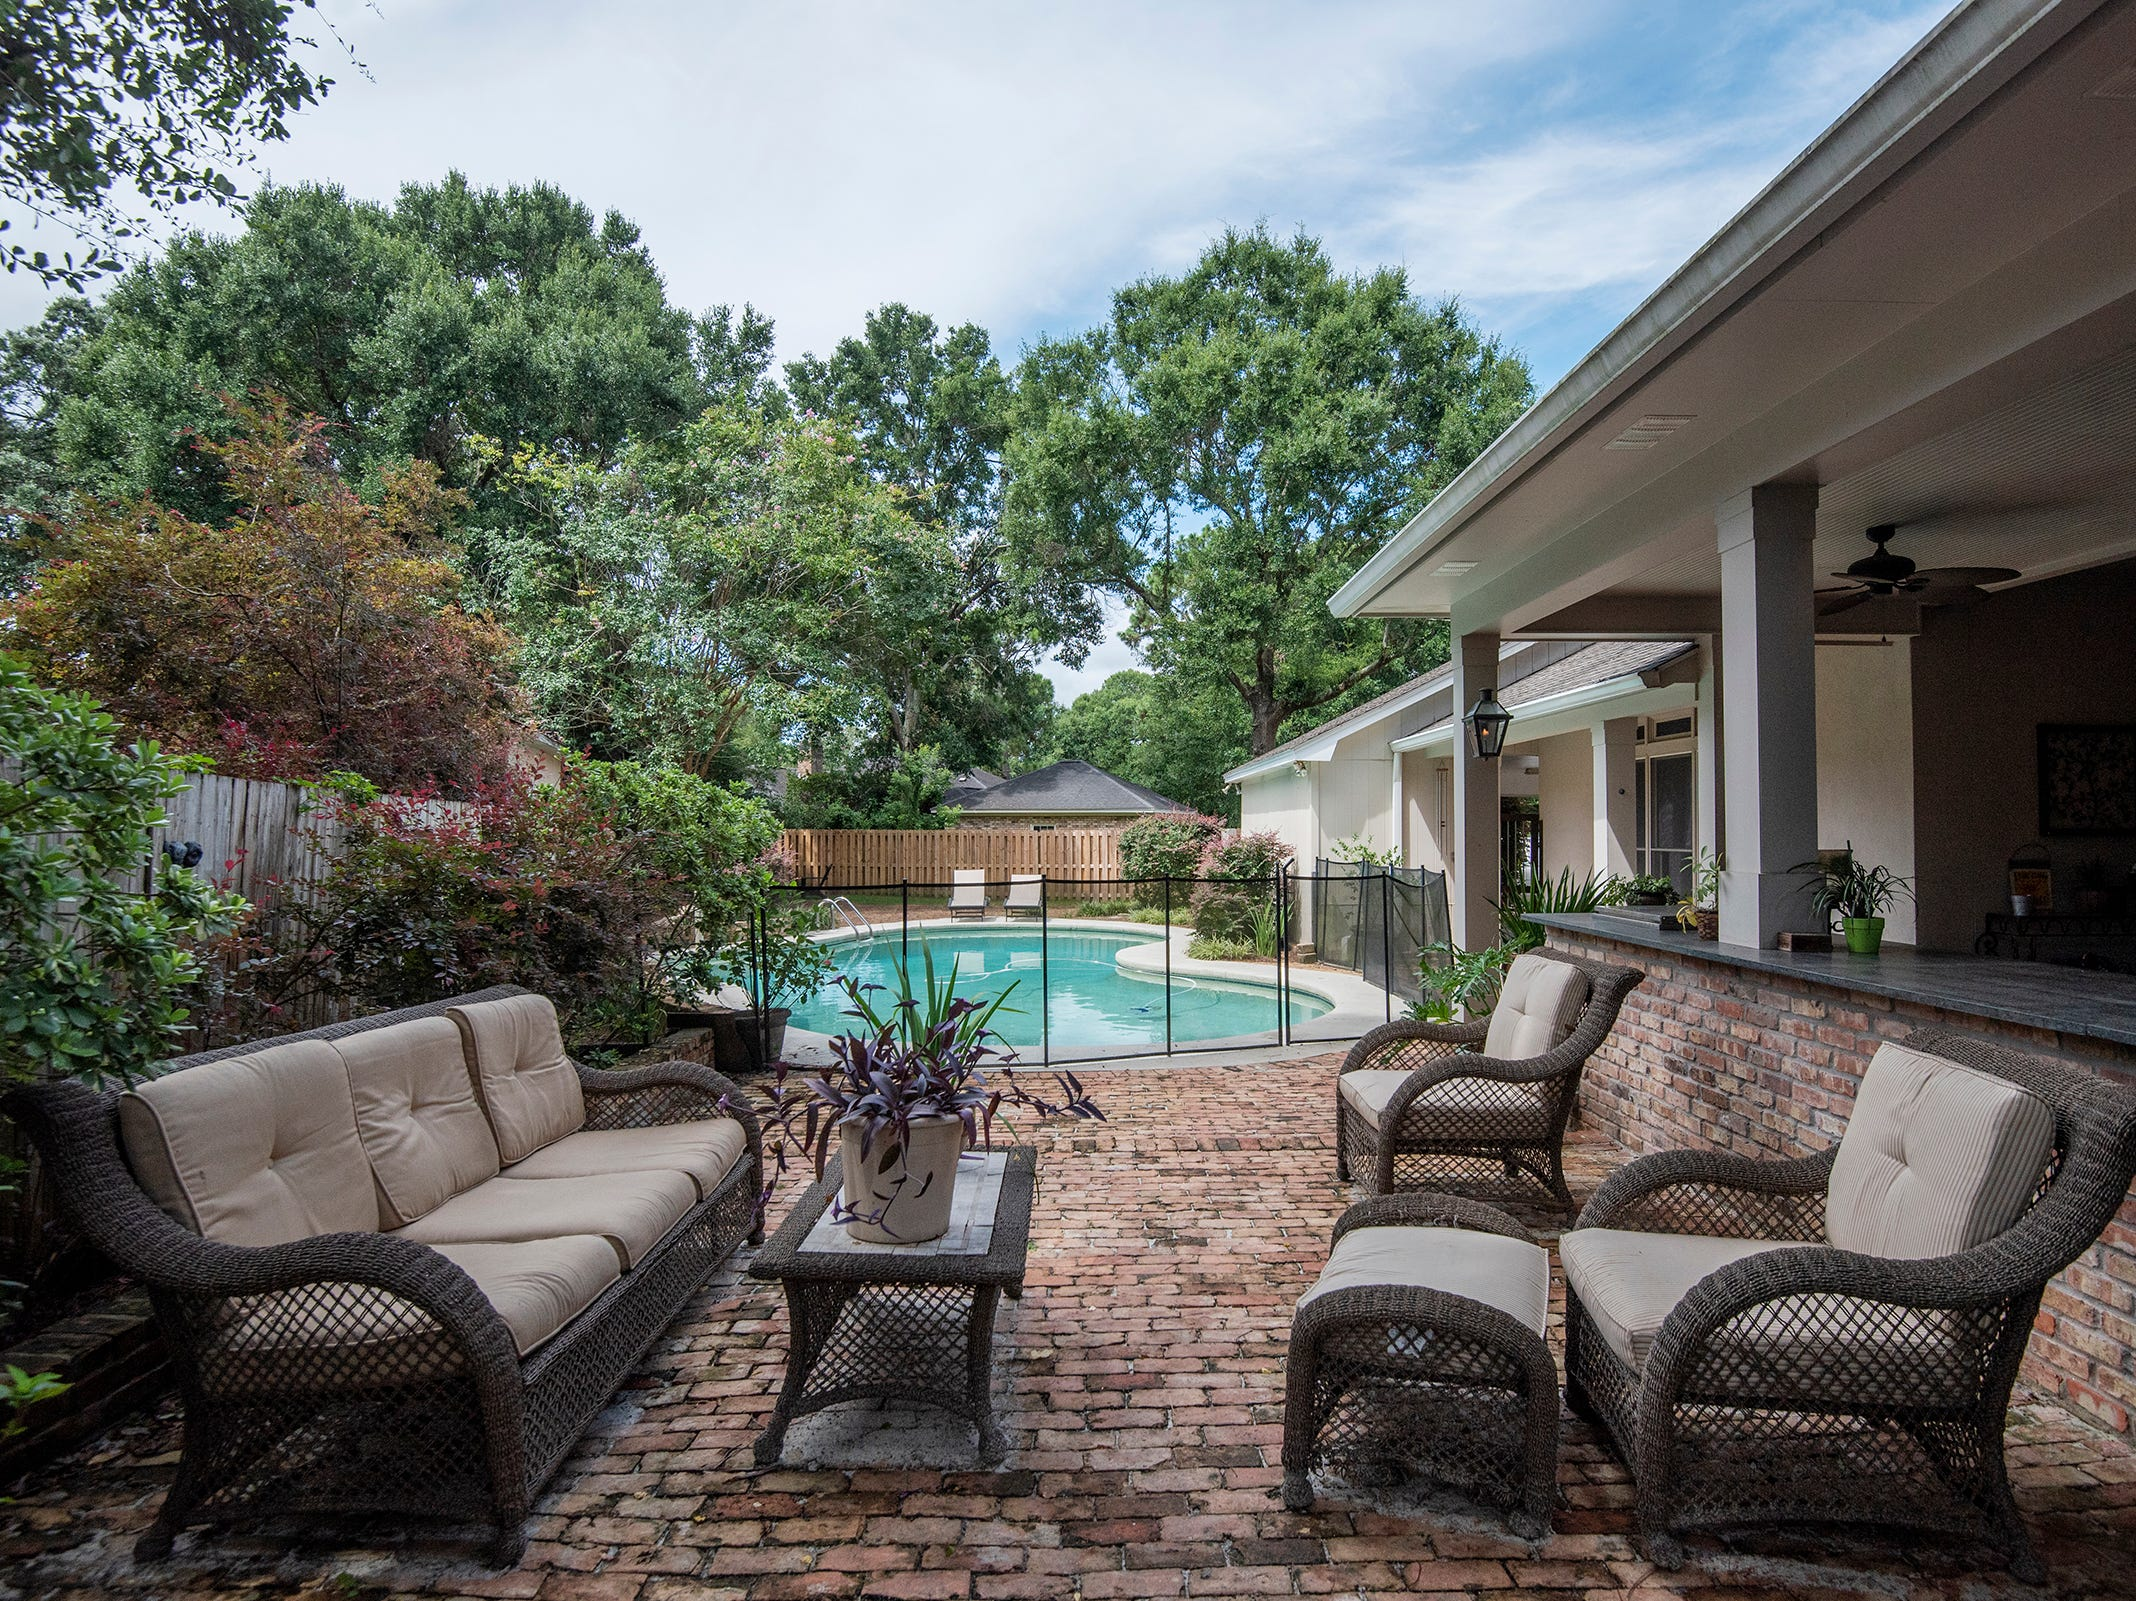 2474 Semur Rd., the open patio overlooks the pool.